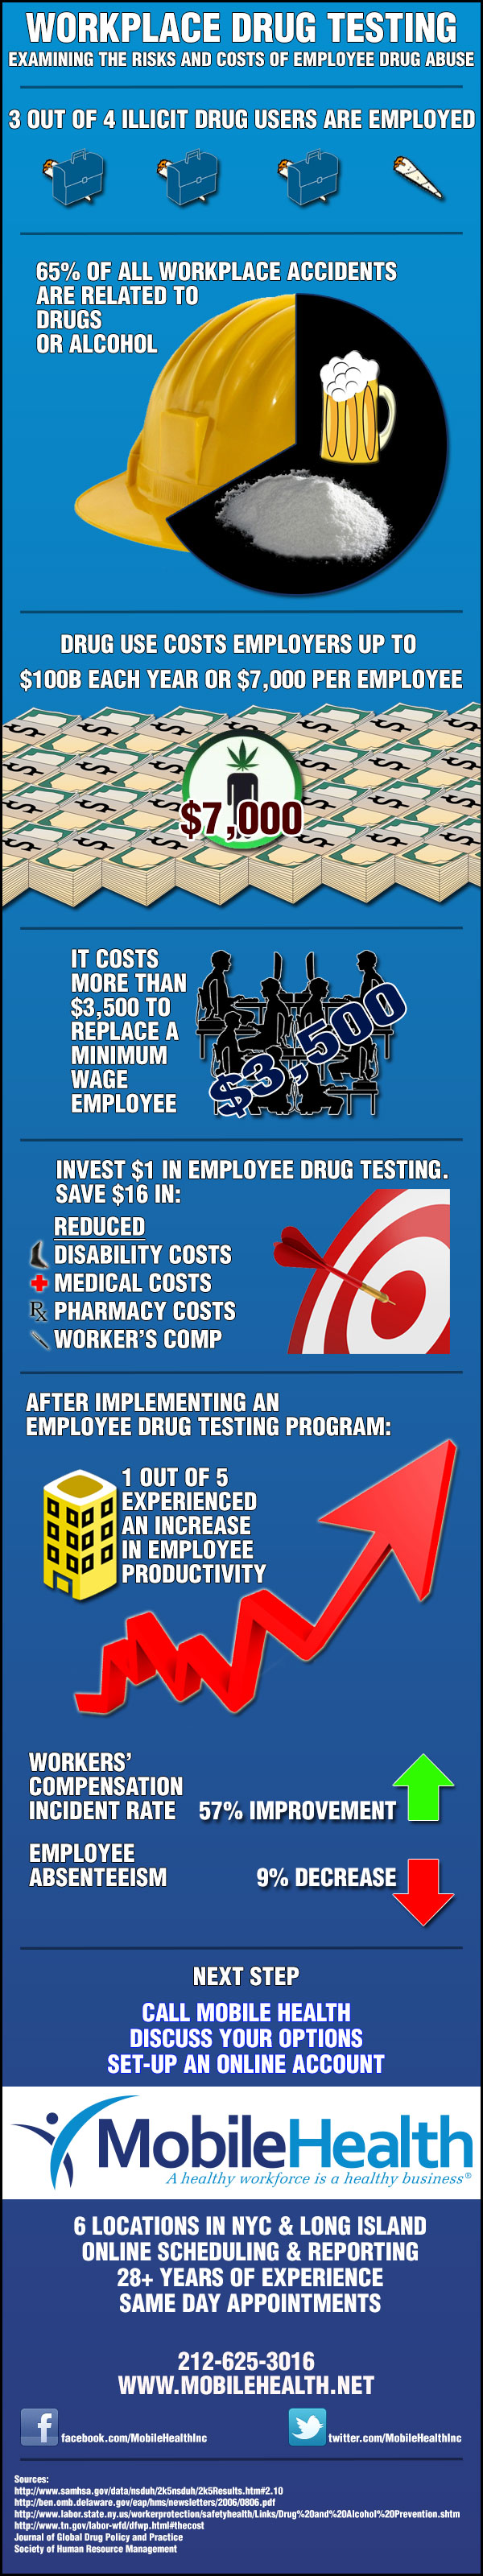 workplace-drug-testing-infographic-plaza